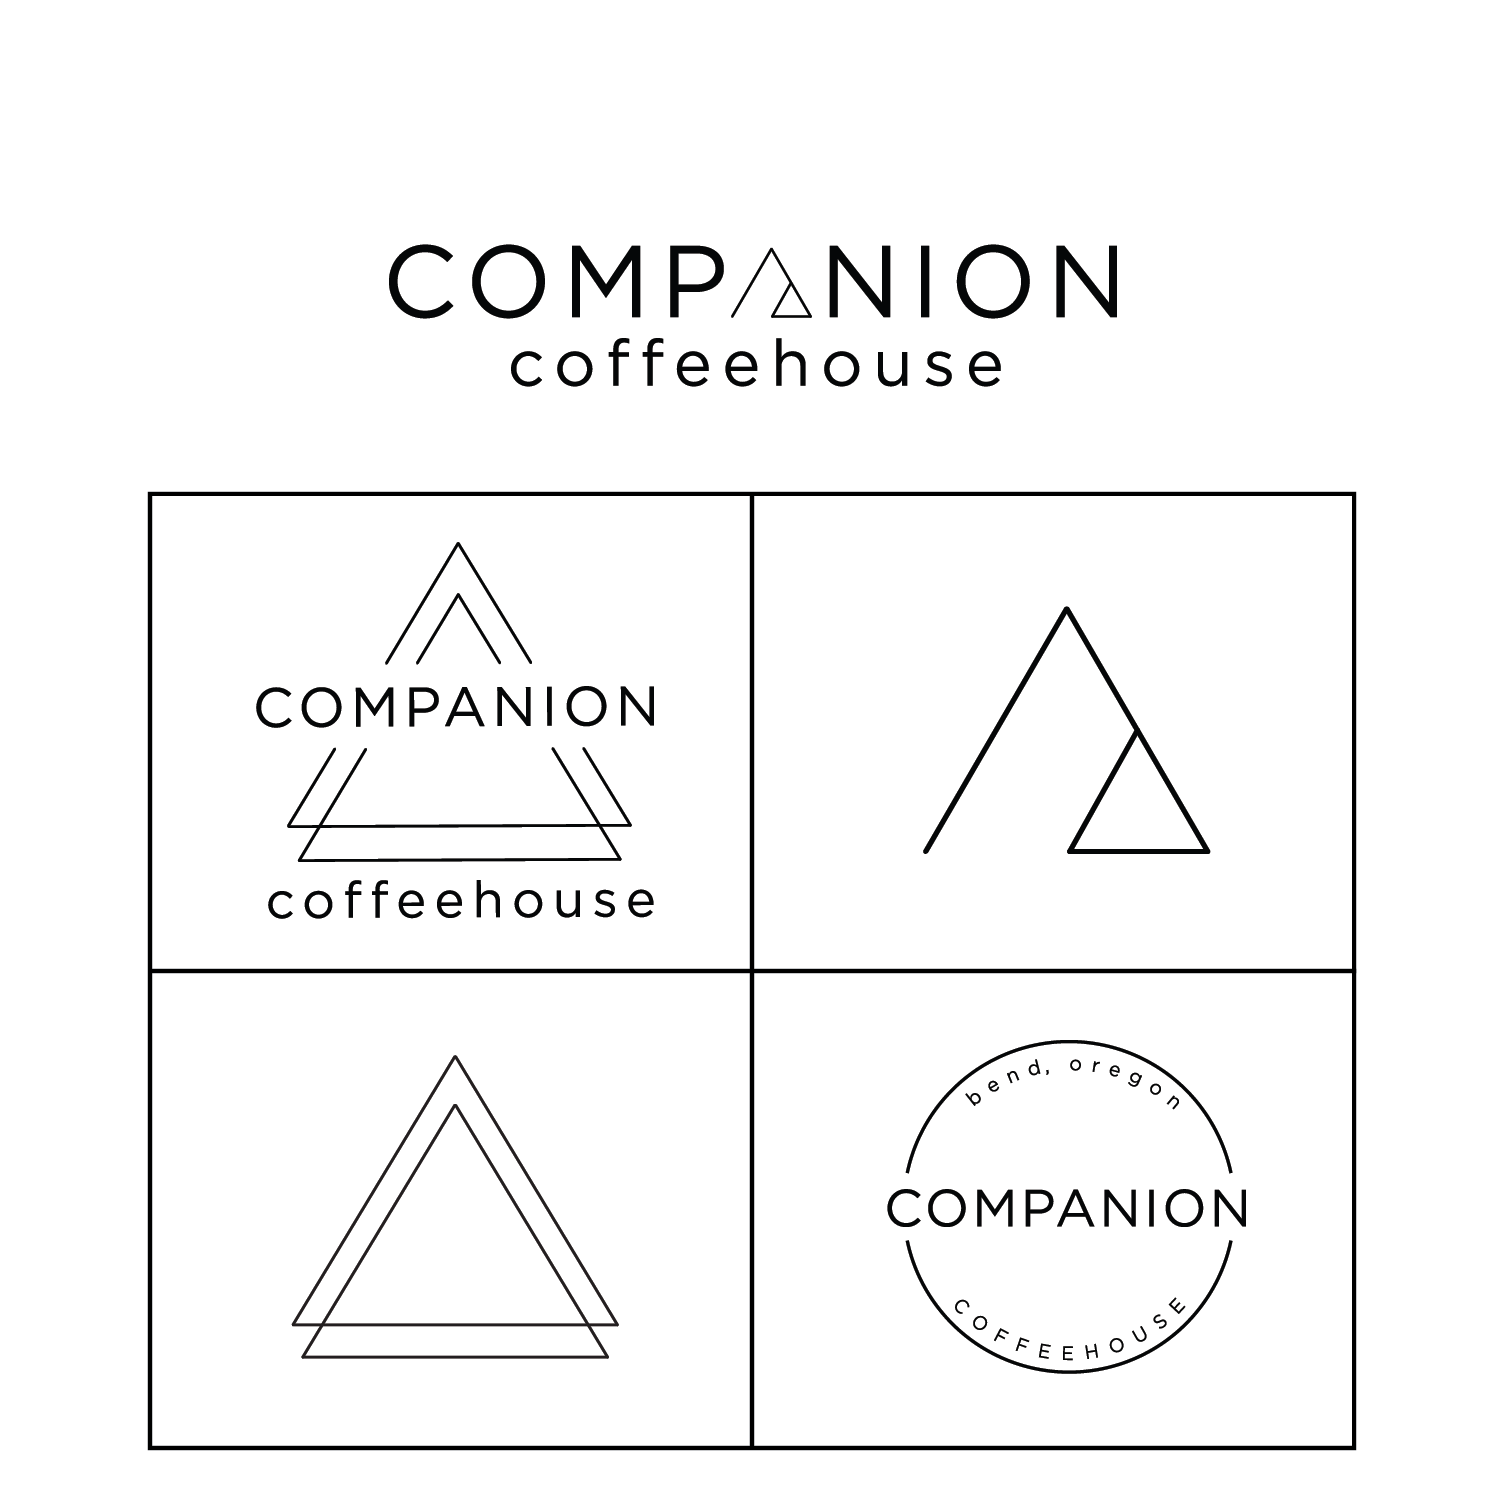 Logo+Merch Design+brand identity - Companion Coffeehouse is located in Bend, Oregon and has a beautifully modern, bright style to their space, featuring artisan crafted coffee and a tranquil atmosphere. Creating Companion's logo, packaging and branding, I wanted to incorporate clean, minimal design reflecting The Sister's Mountains which are infamous in Bend and the greater Pacific North West. This project was an all-time favorite, creating uniquely minimal designs, clean lines and a modern scope for their branding.